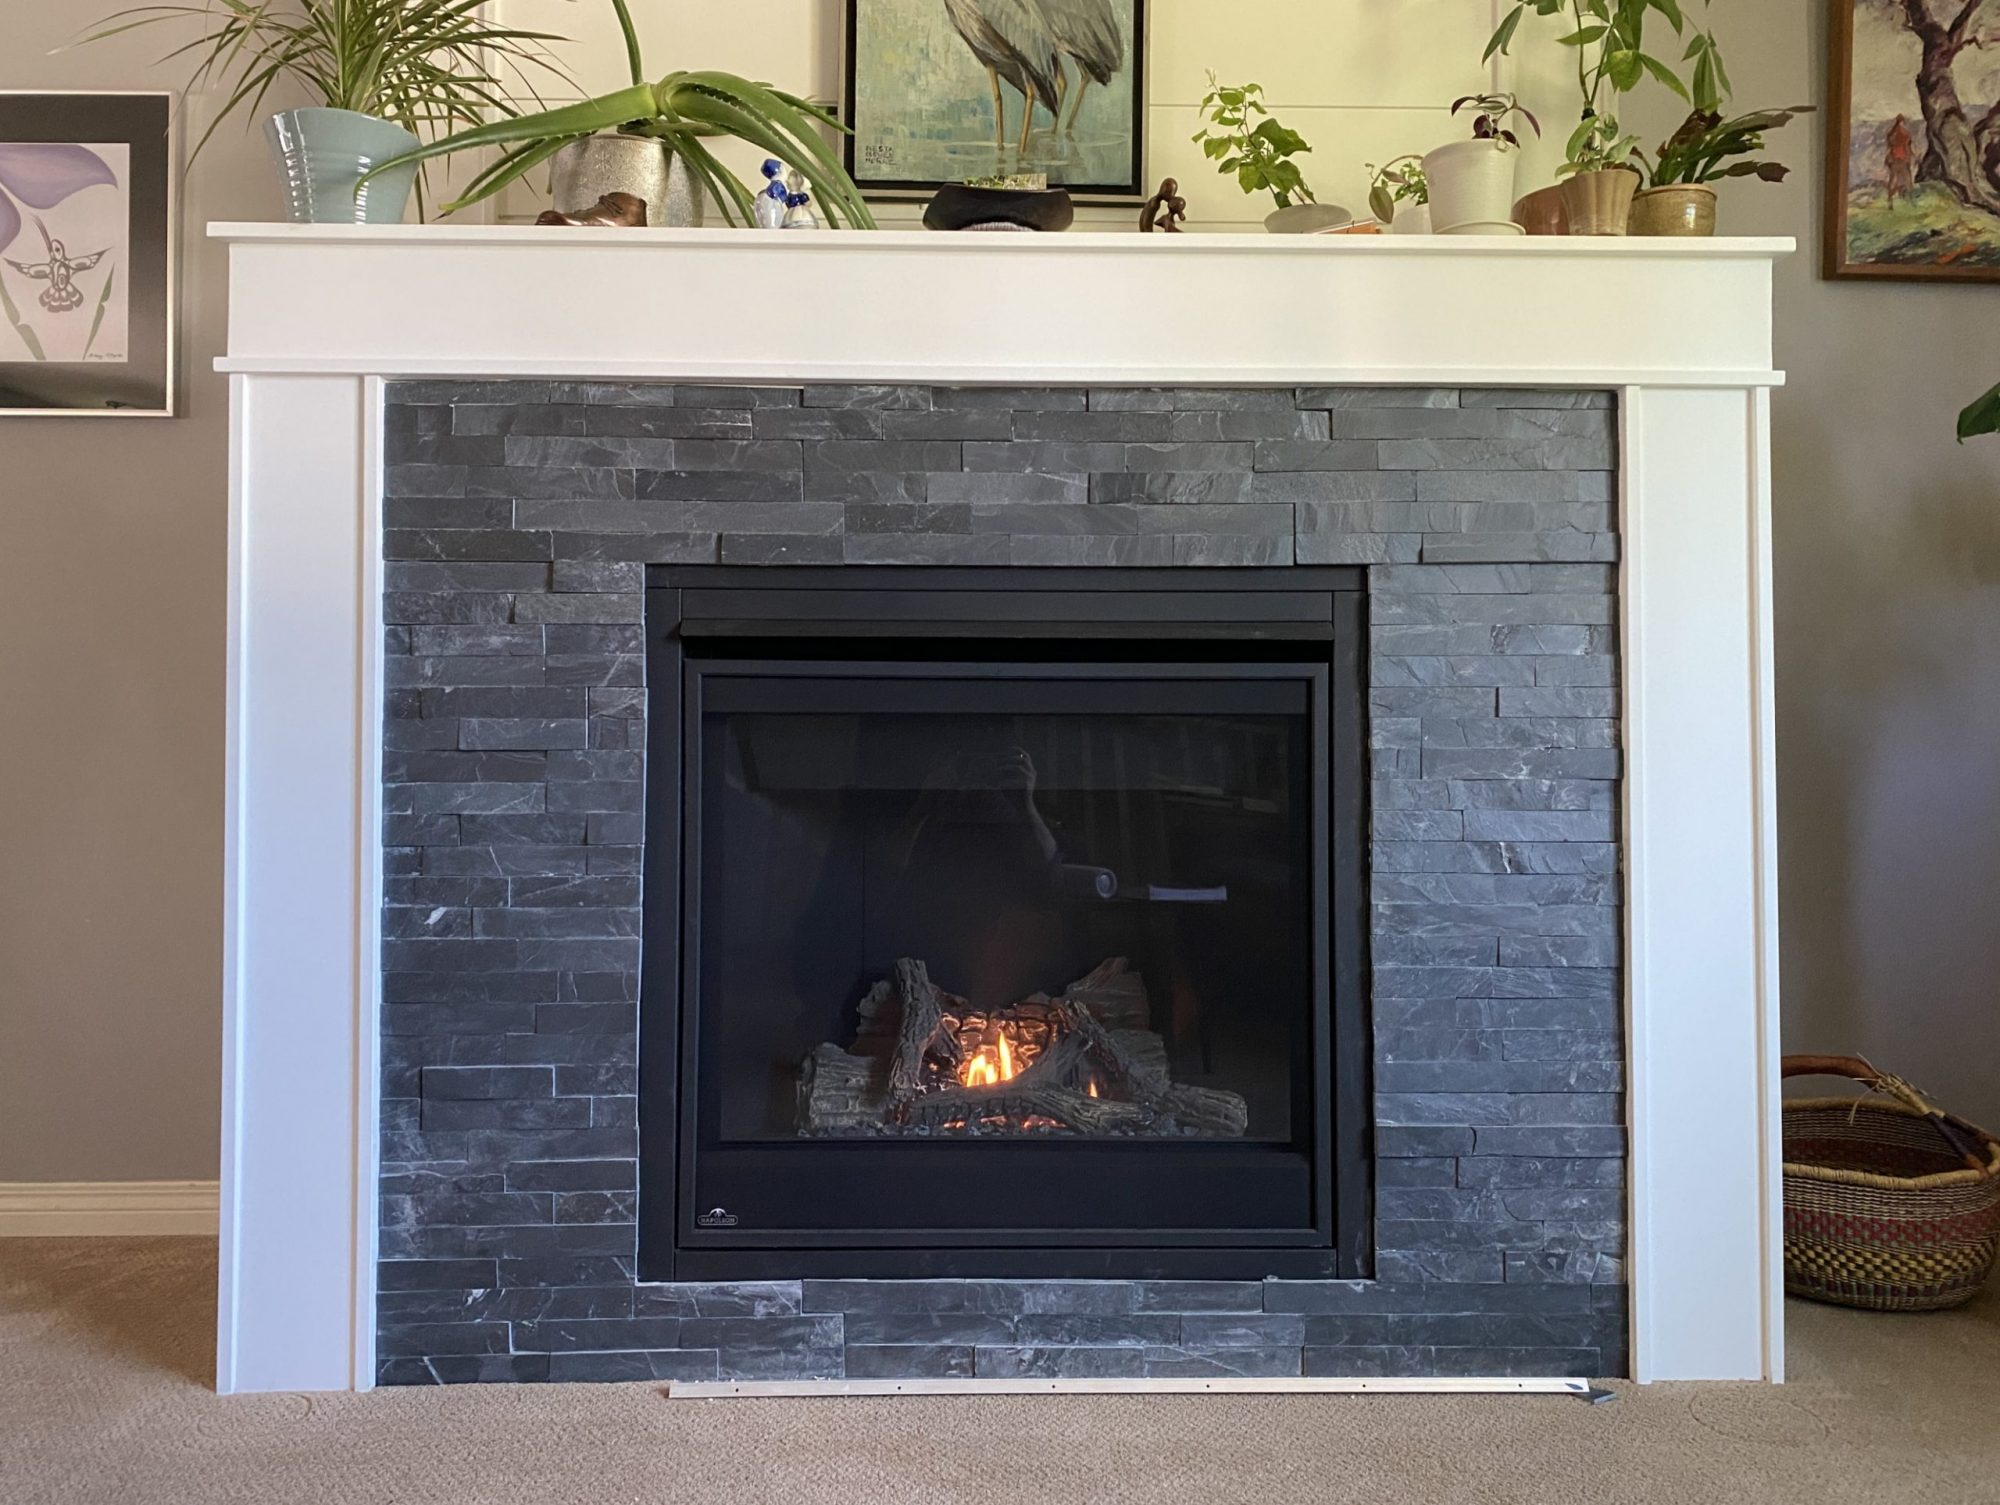 Zero clearance fireplace